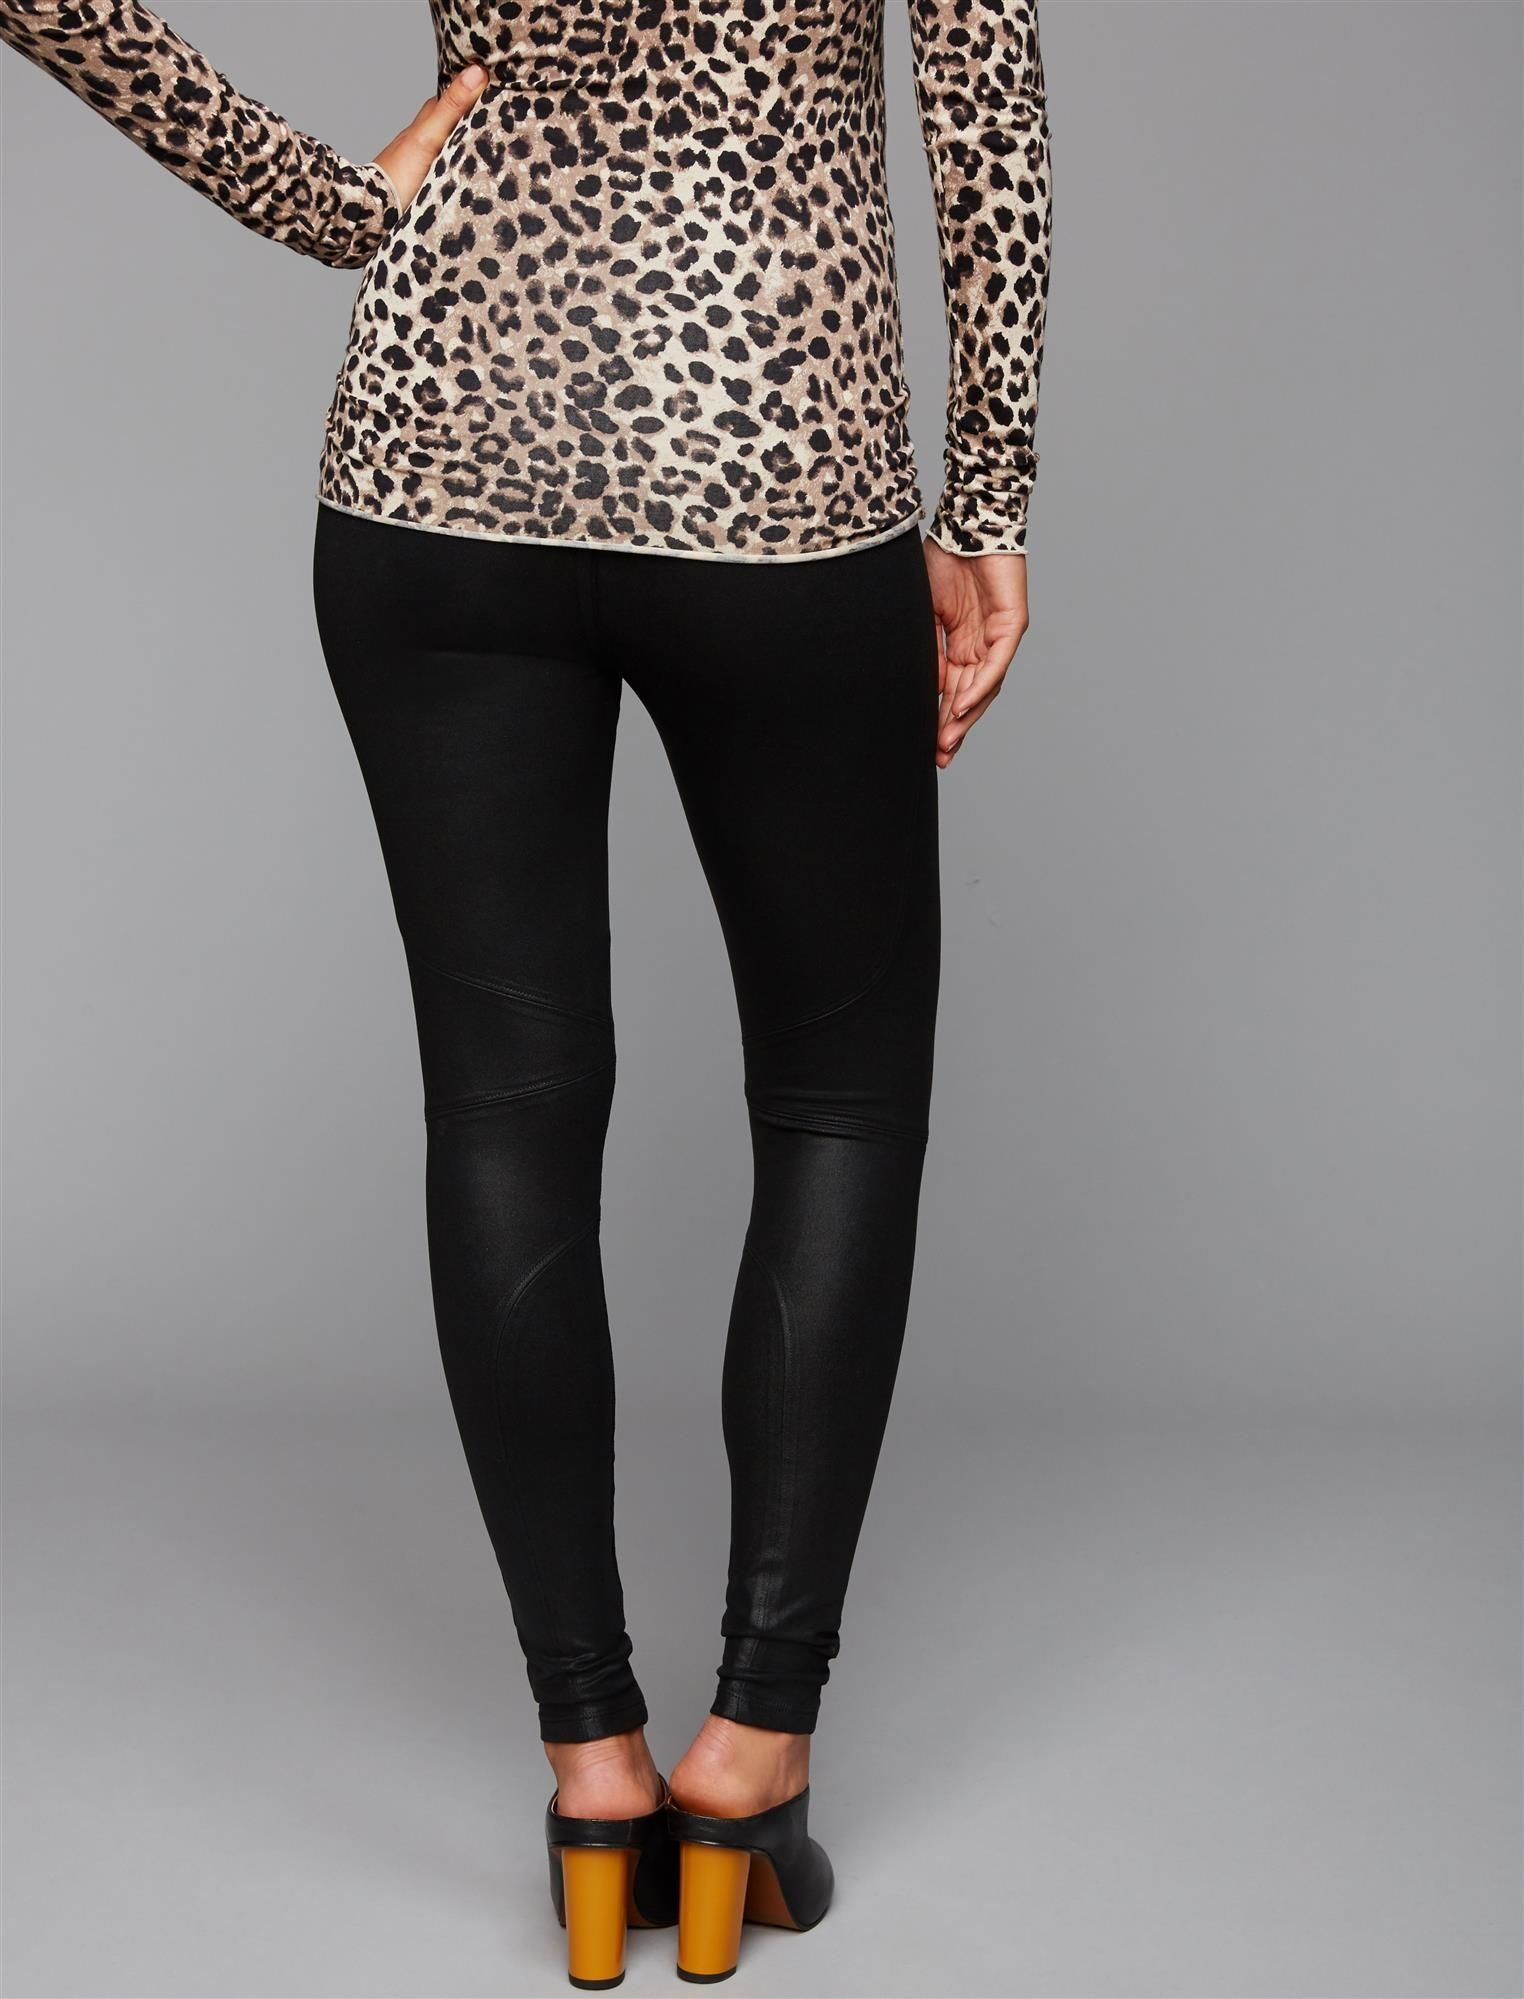 8e038b4d9a596 Maternity Styles - loose-fitting maternity leggings : David Lerner Secret  Fit Belly Maternity Leggings >>> Check this outstanding item by going to  the link ...